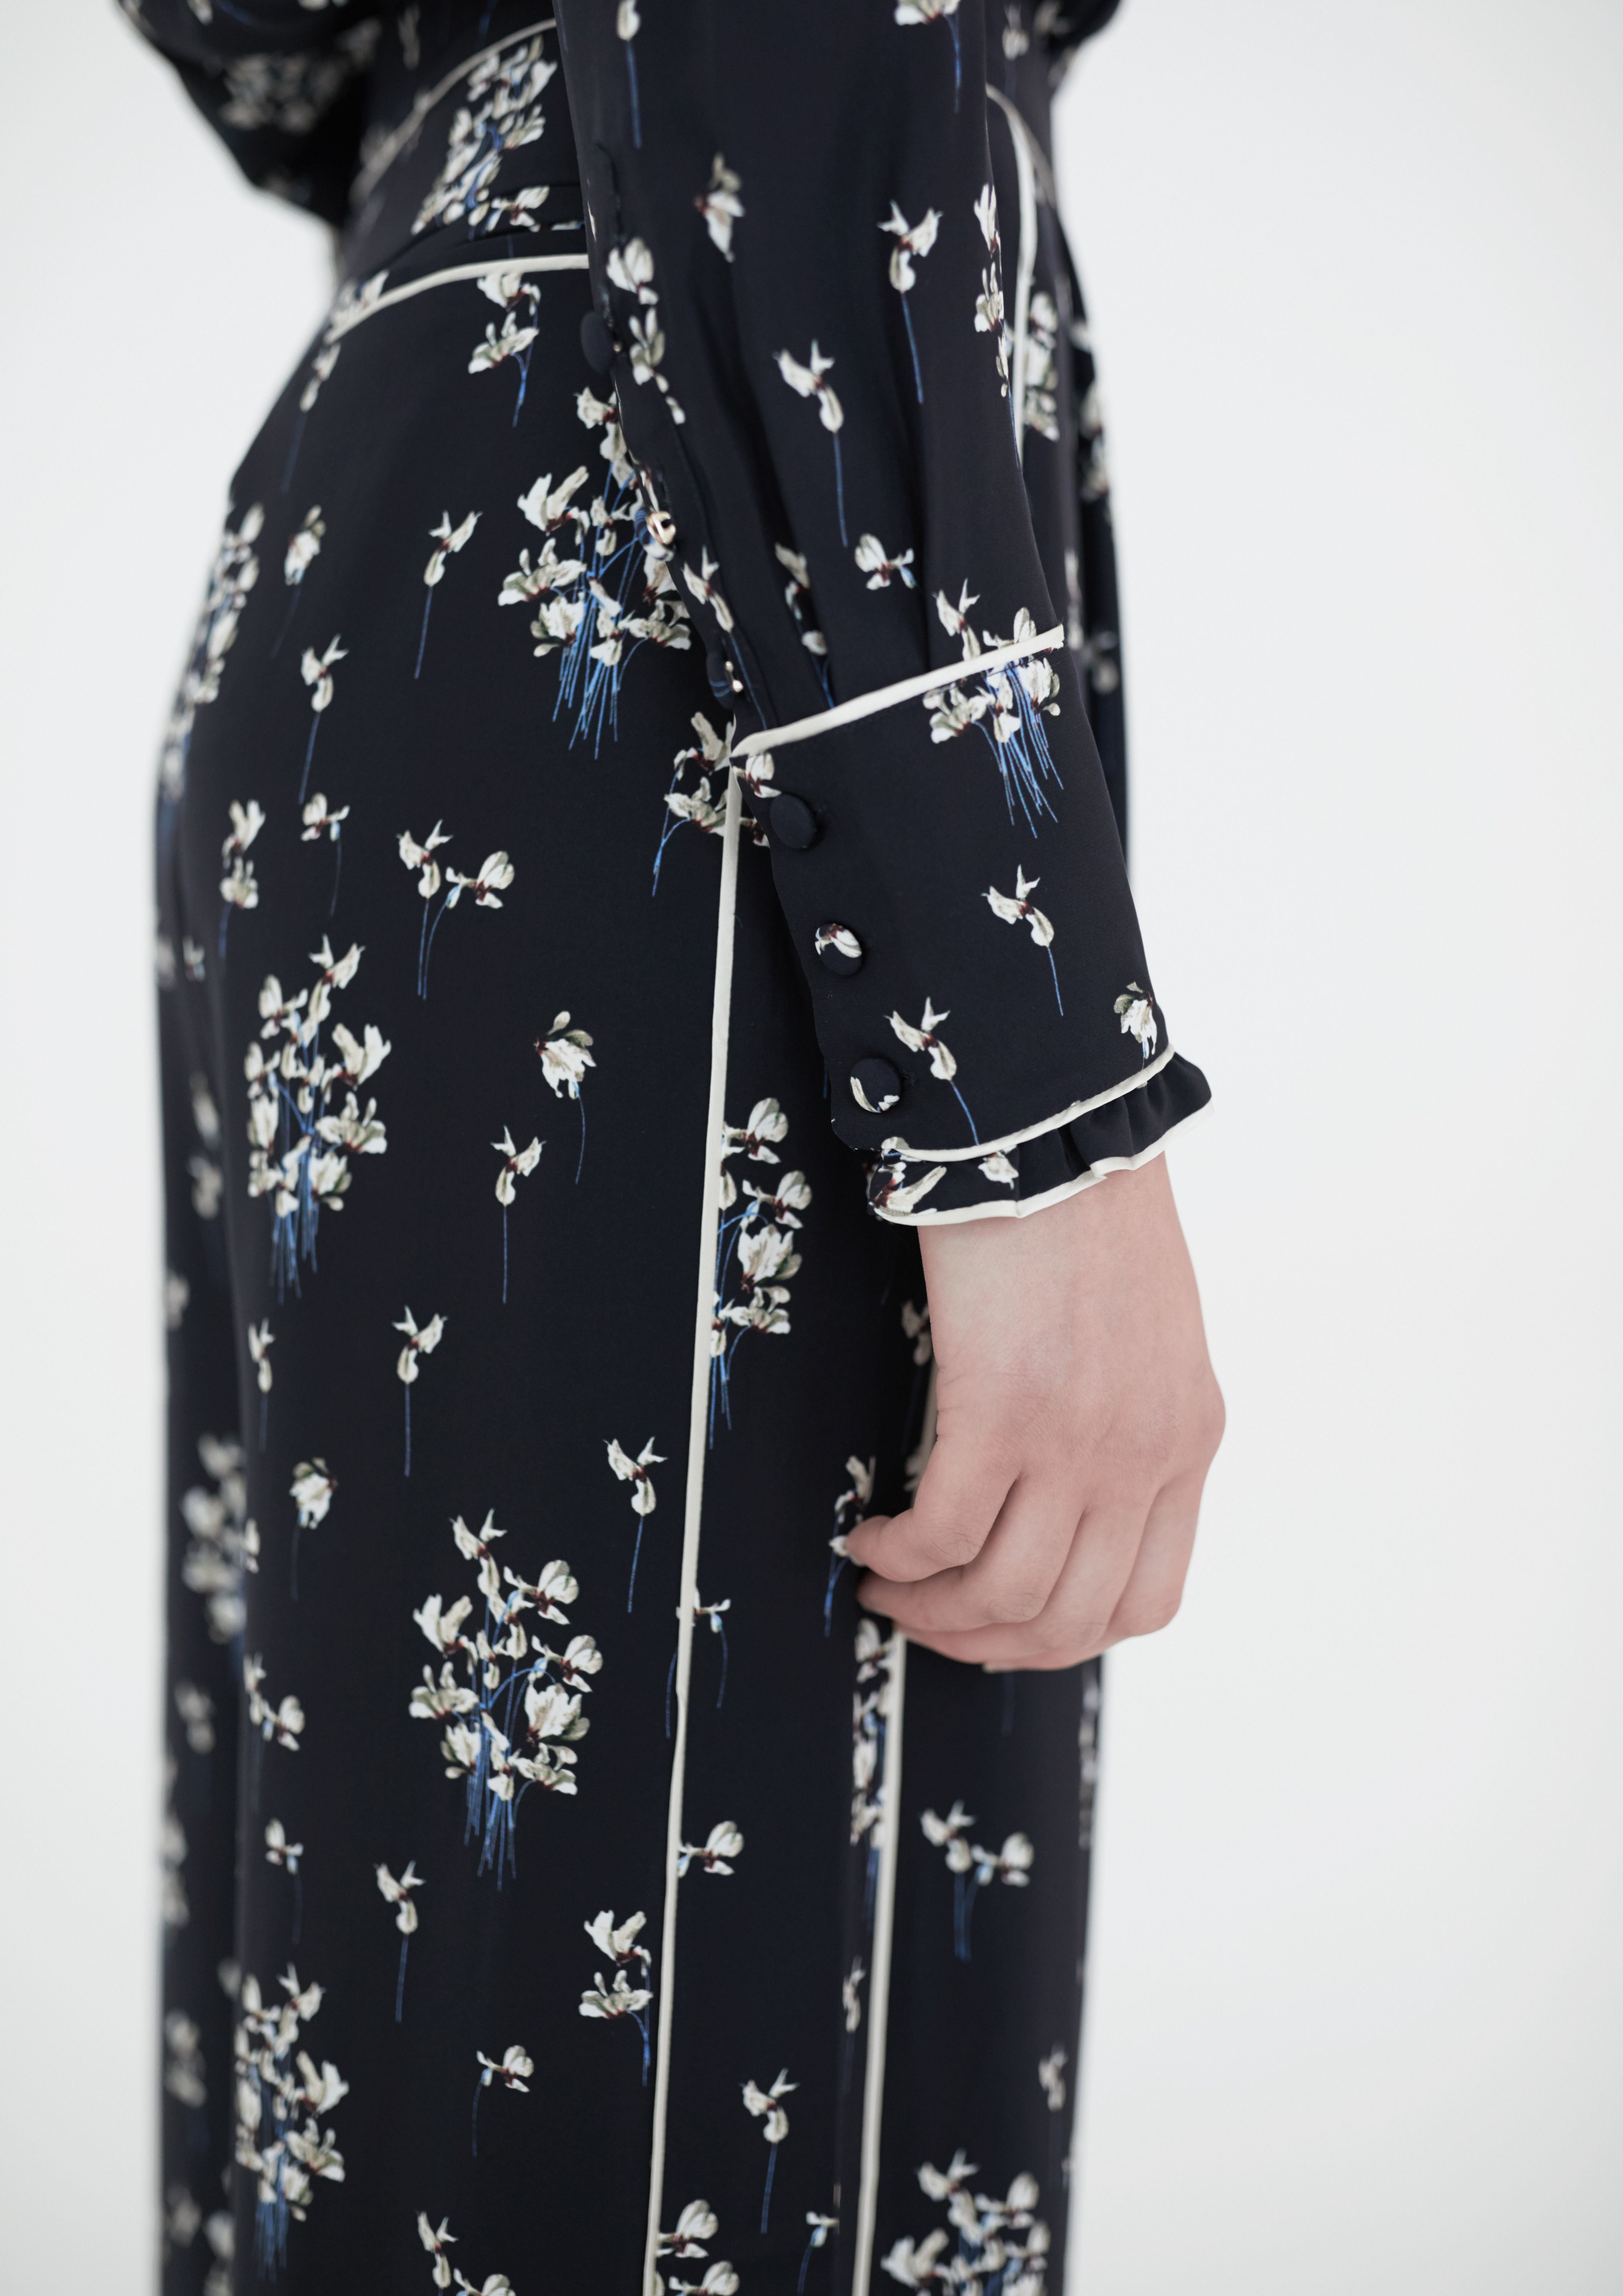 H&m Online Questionnaire The First Preview Of The Coming Erdem X H Andm Collection For